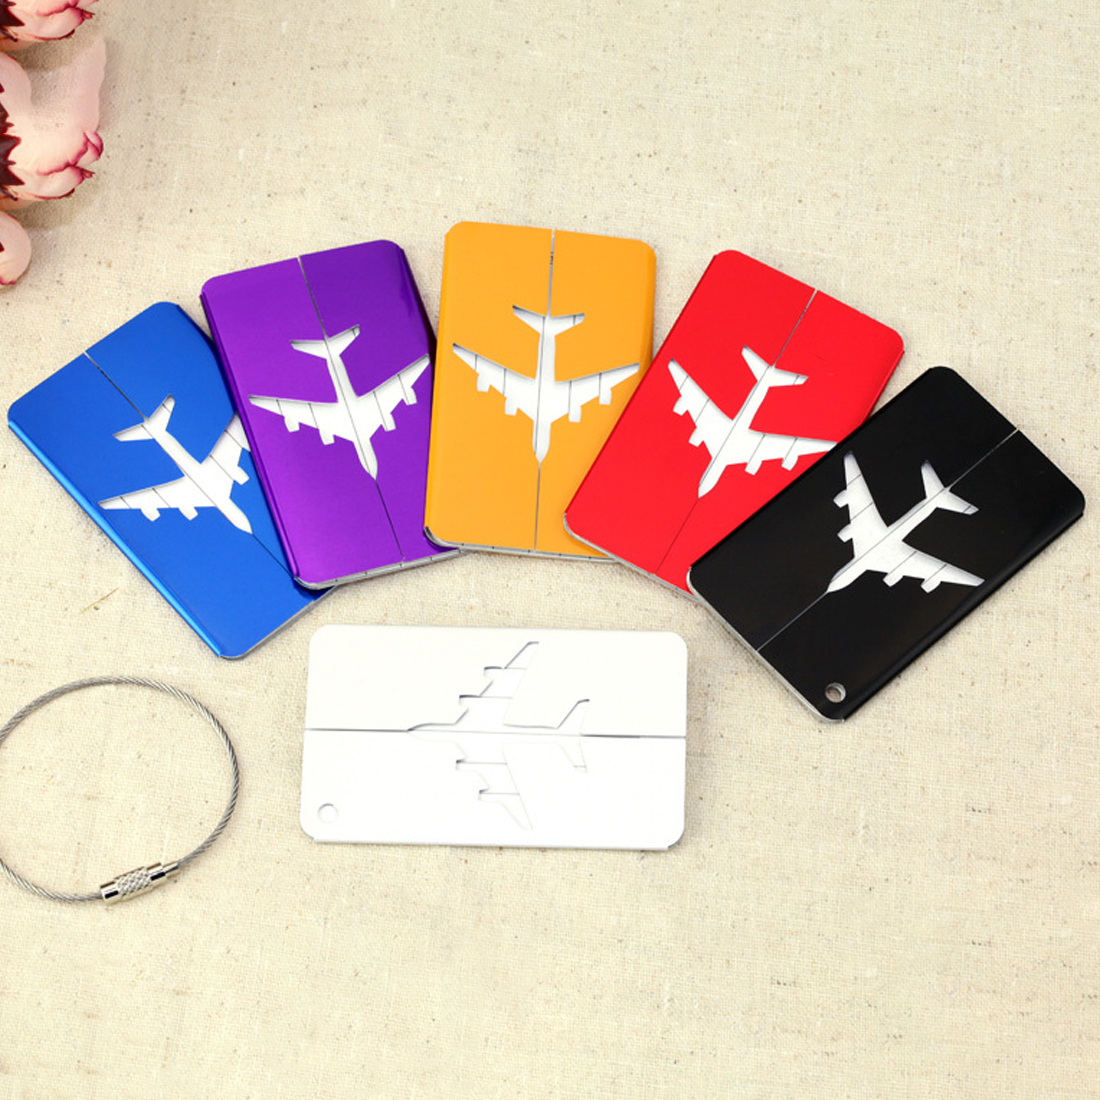 New Mini Rectangle Aluminium Alloy Luggage Tags Travel Accessories Baggage Name Tags Suitcase Address Label Holder